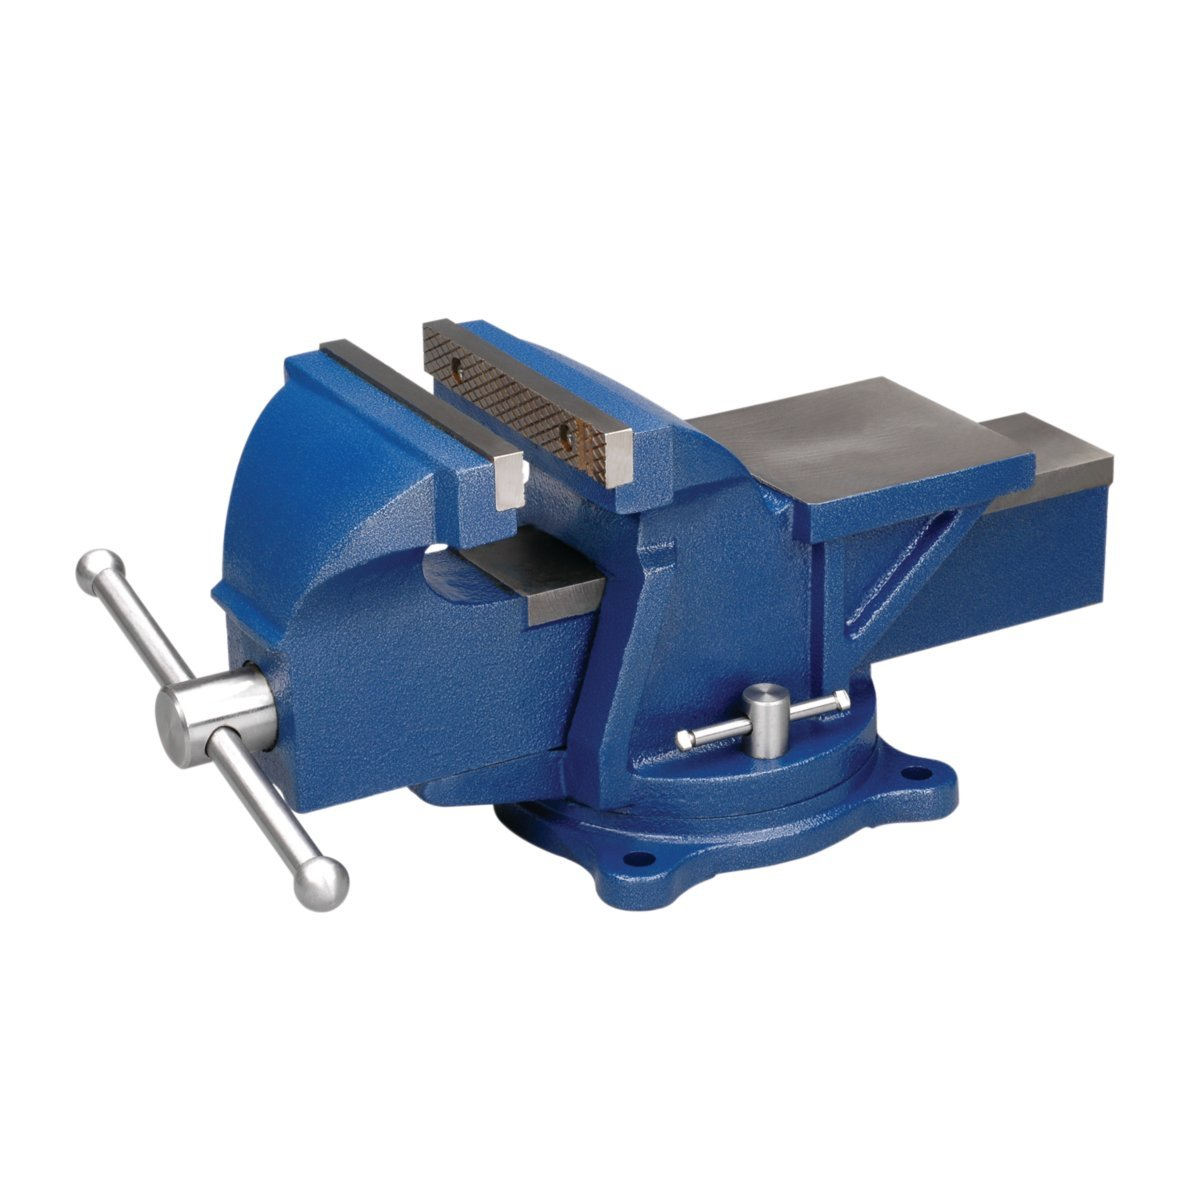 Best Bench Vise - Buyer's Guide And Reviews